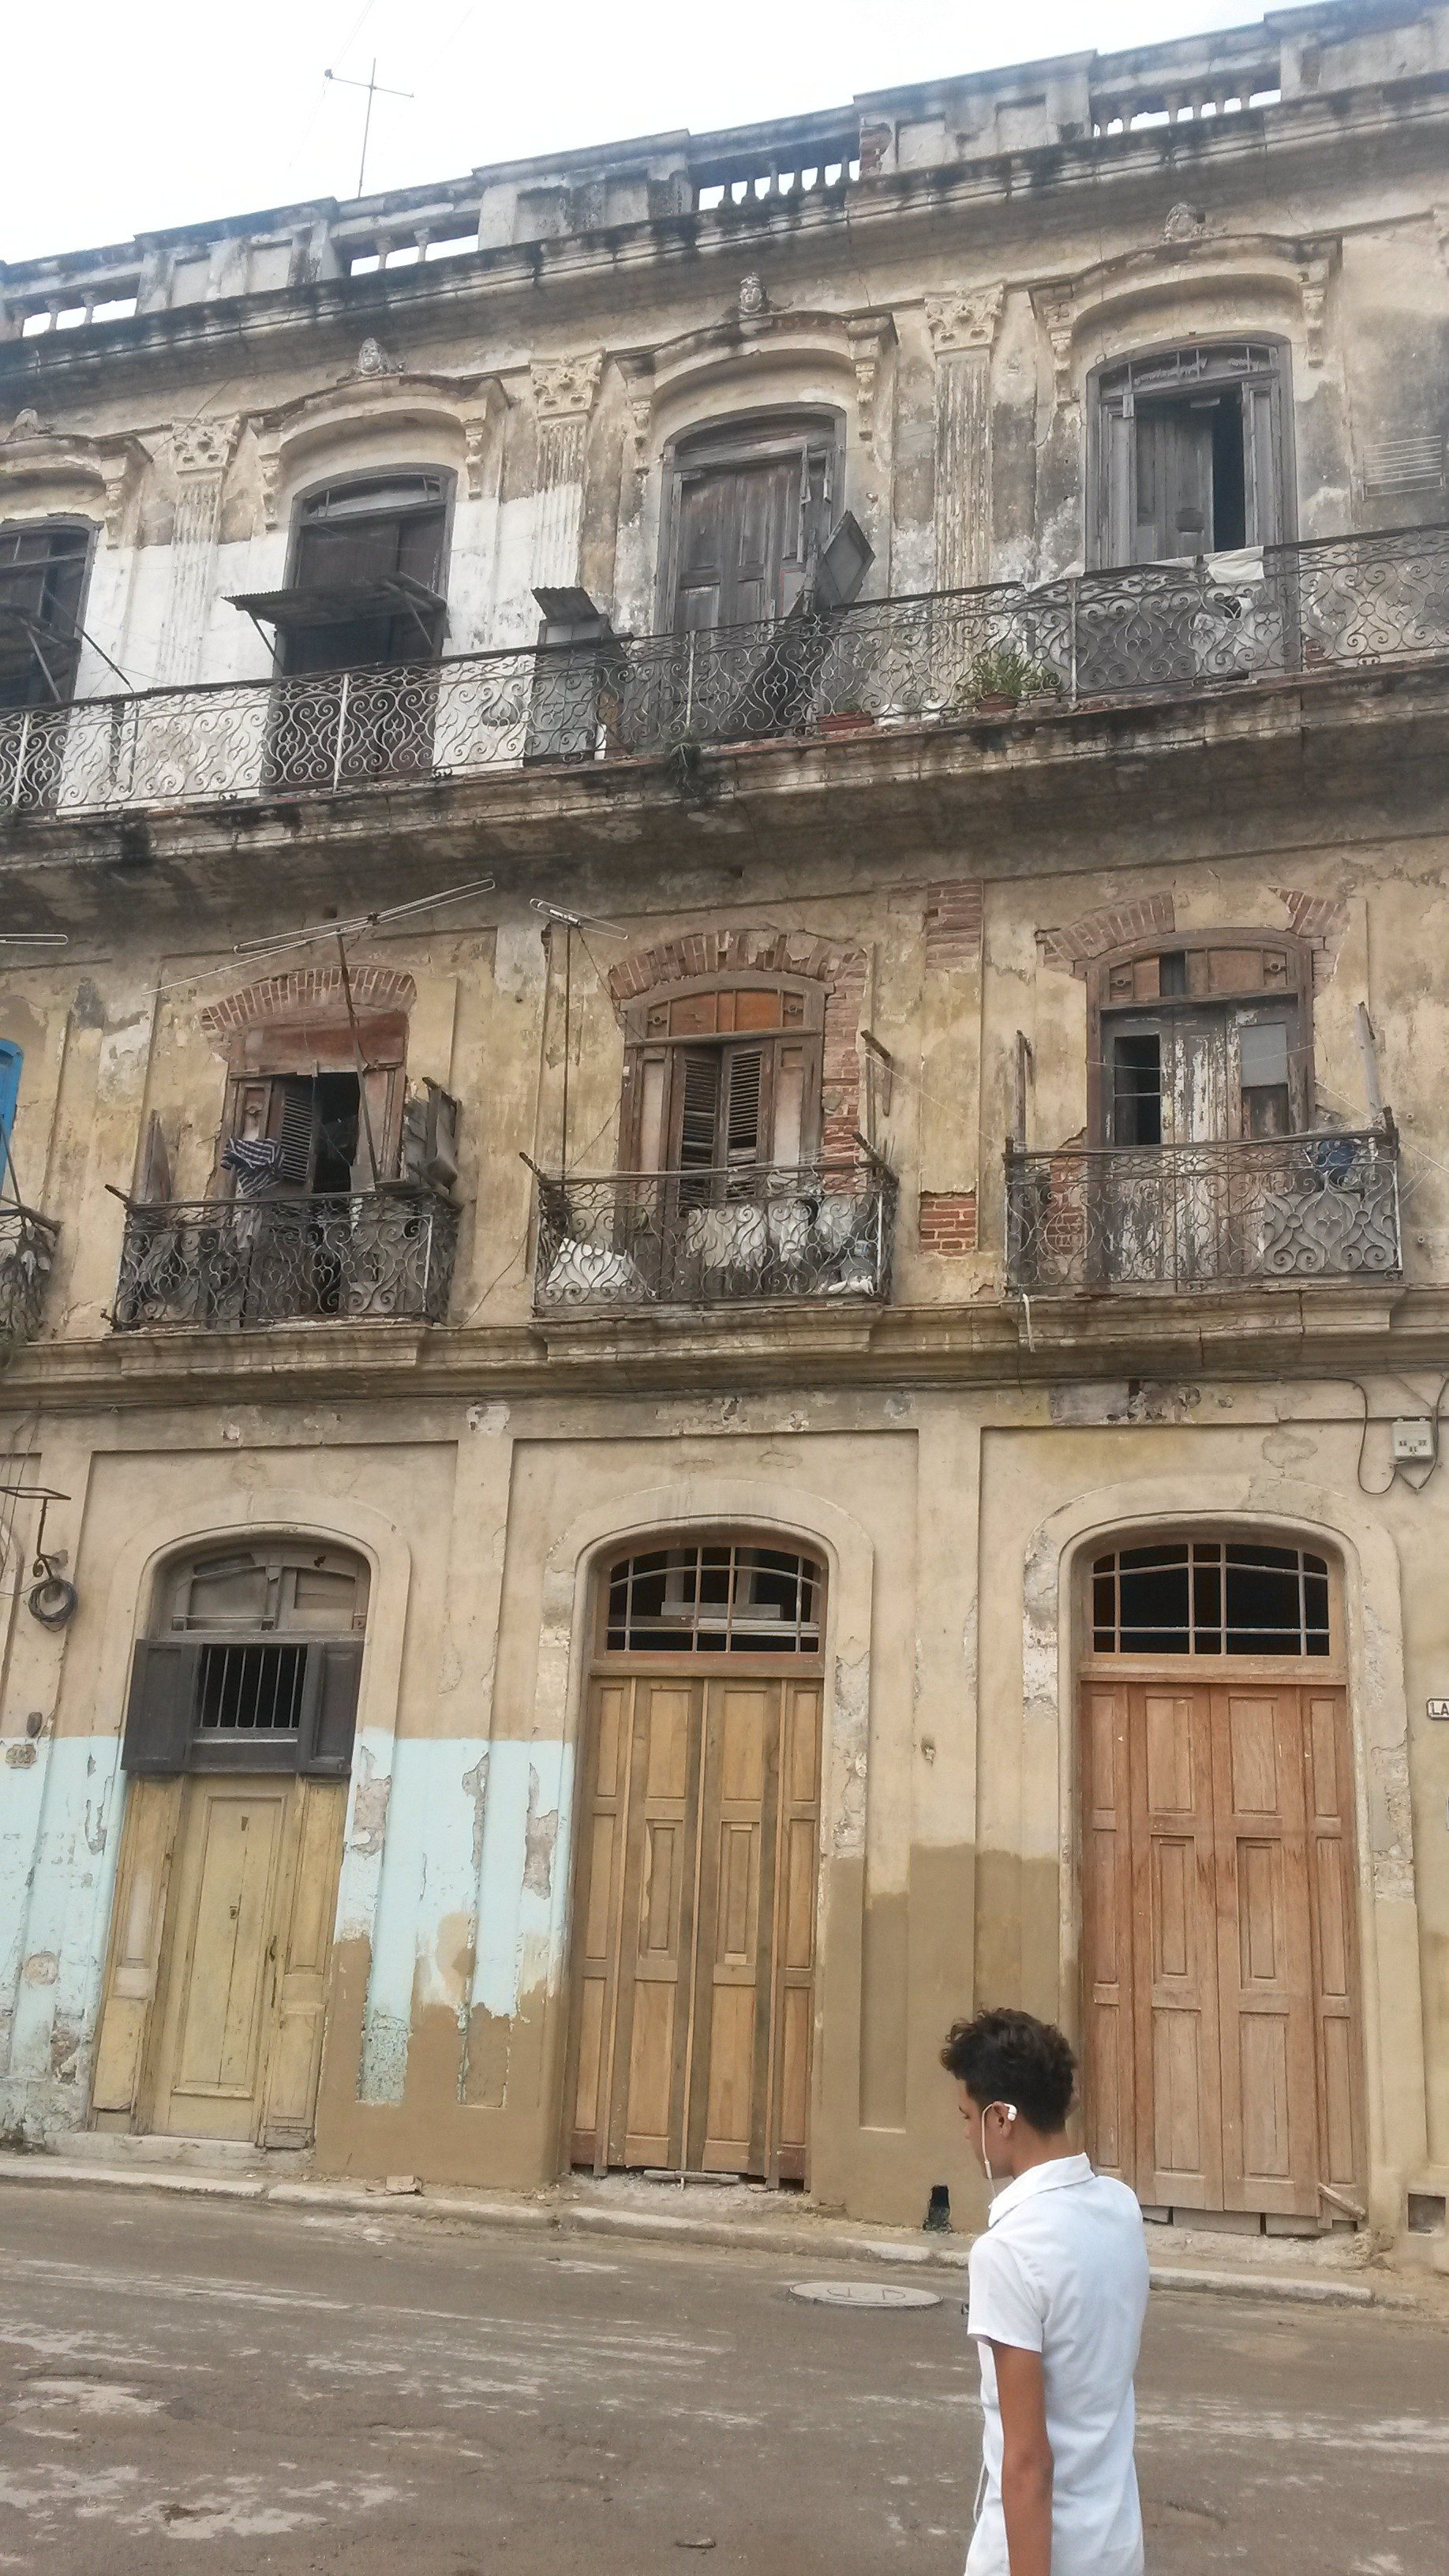 An occupied dilapidated building in downtown Habana (photo: Caroline Rice)